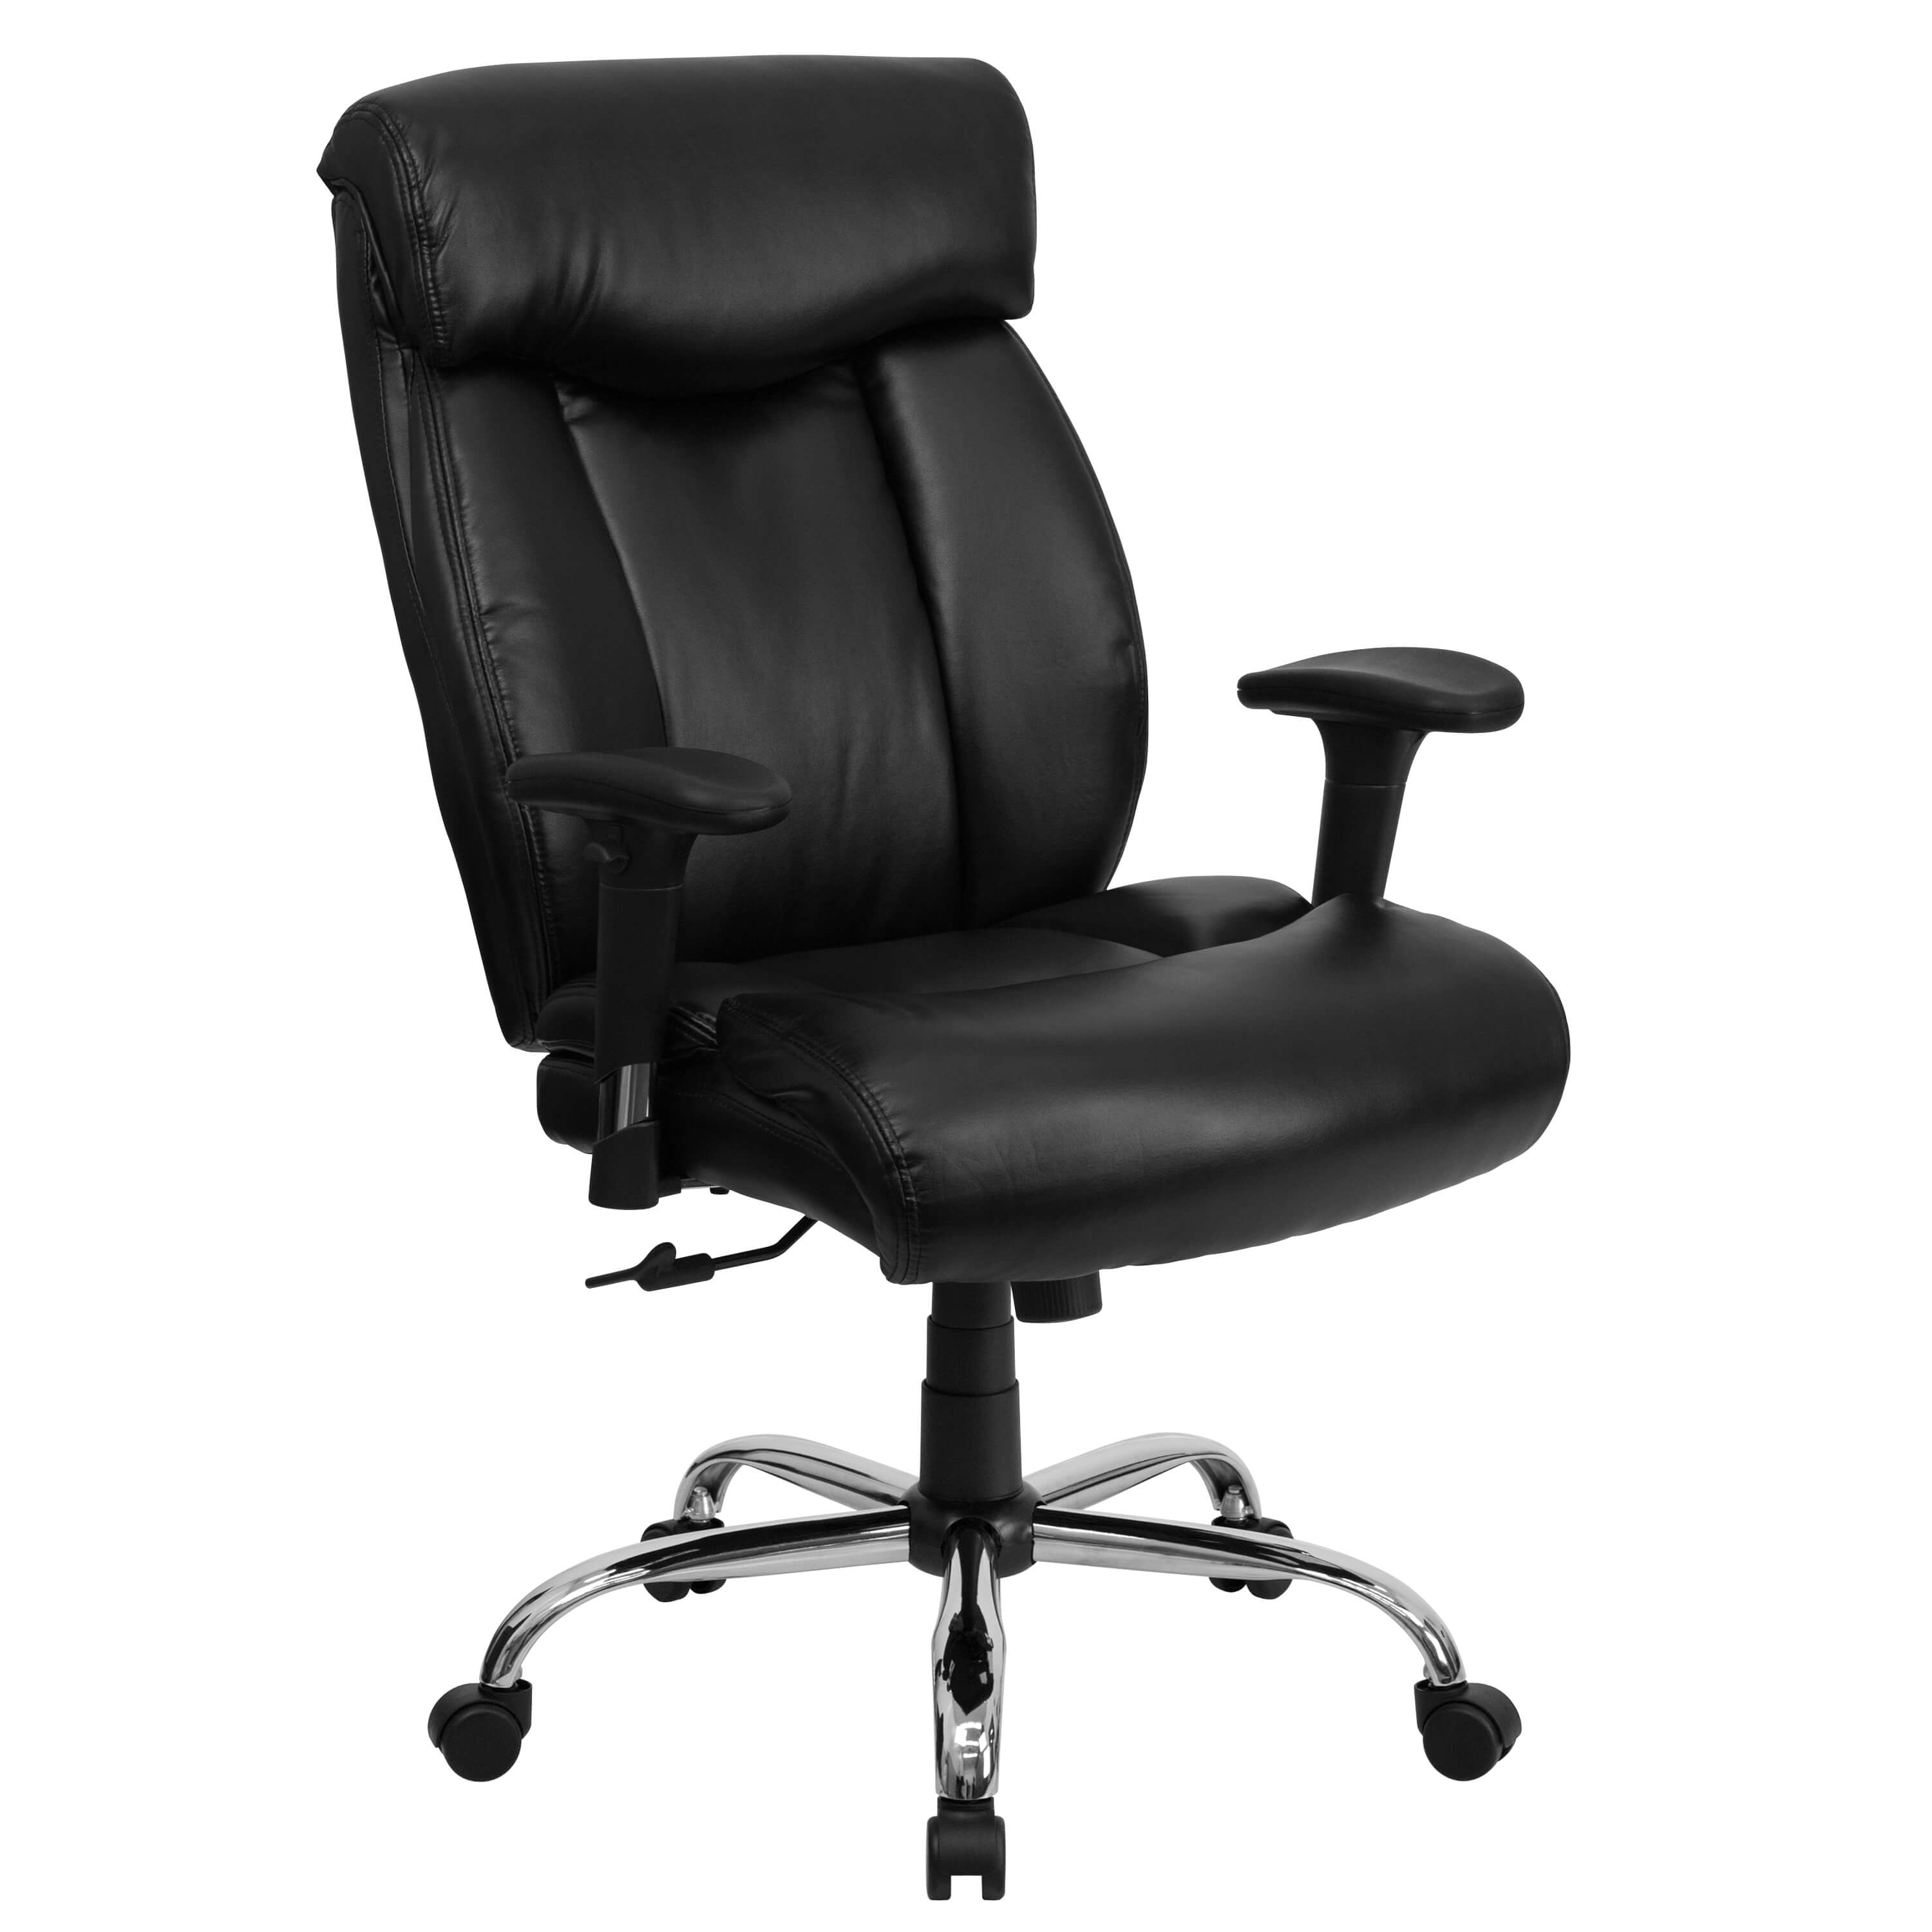 Big and tall executive office chairs CUB GO 1235 BK LEA A GG ALF